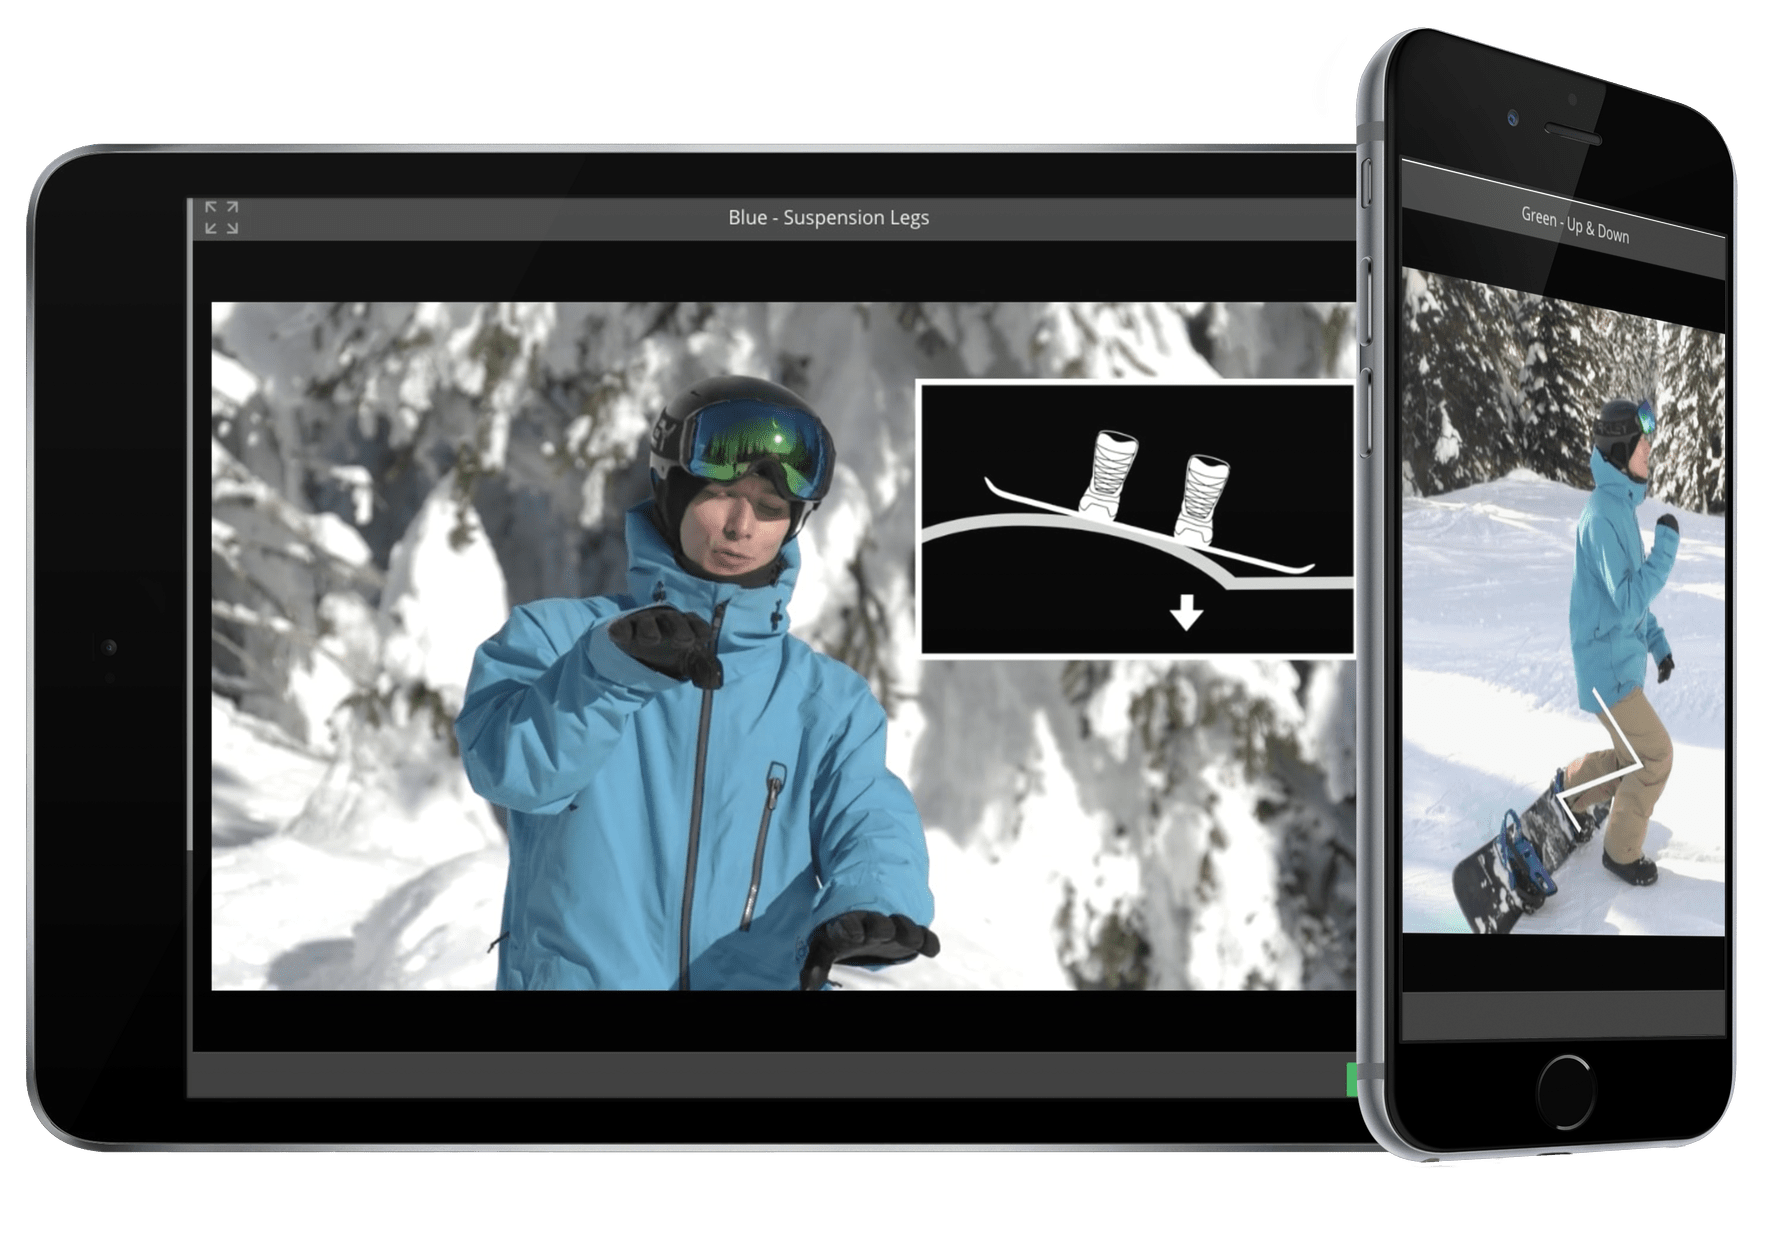 A Virtual Snowboard Coach In Your Pocket